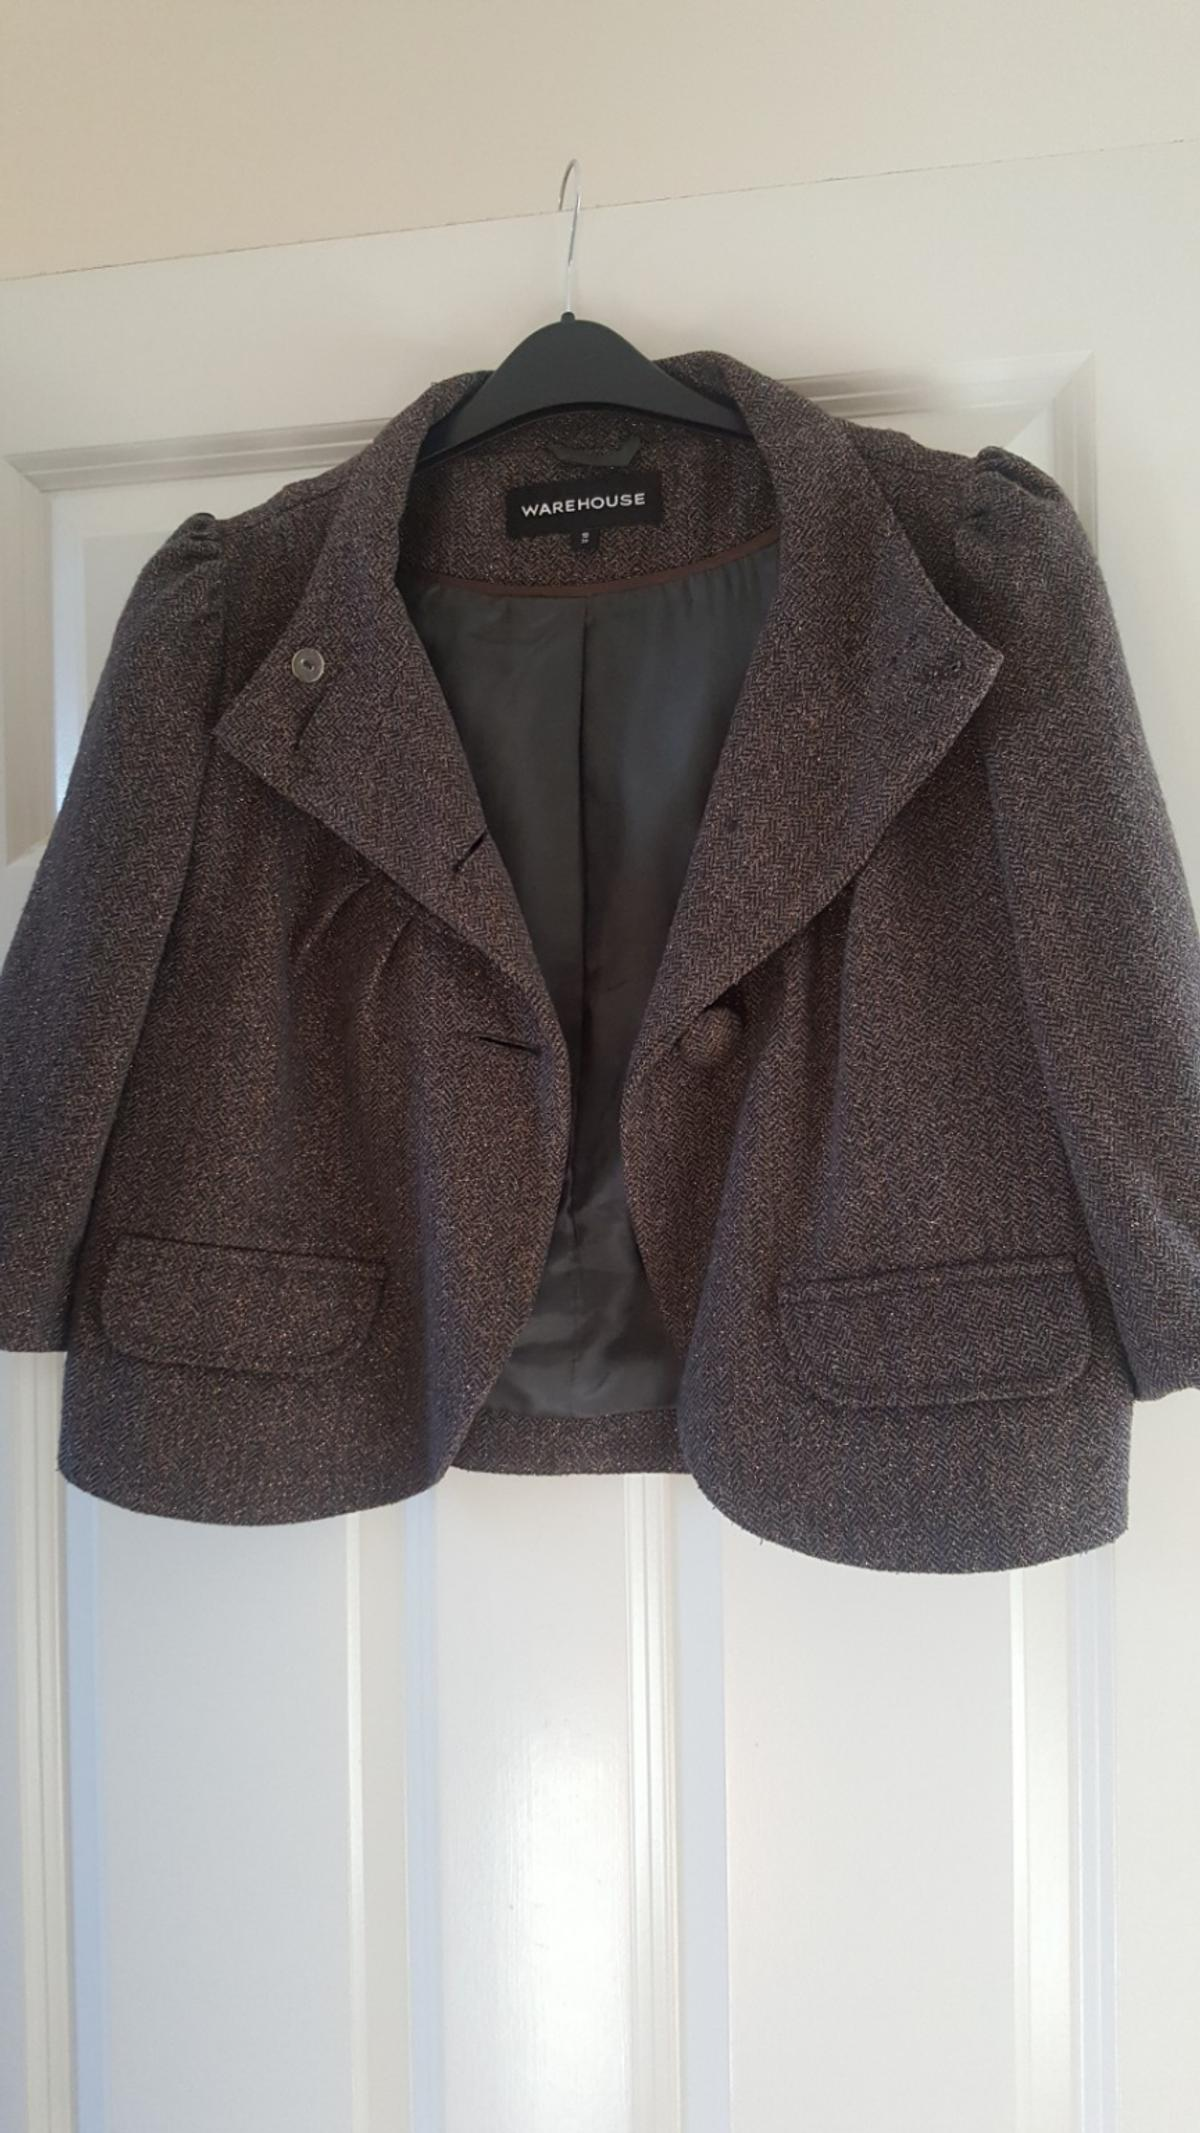 Clothes, Shoes & Accessories Women's Clothing Ladies Jacket Size 12